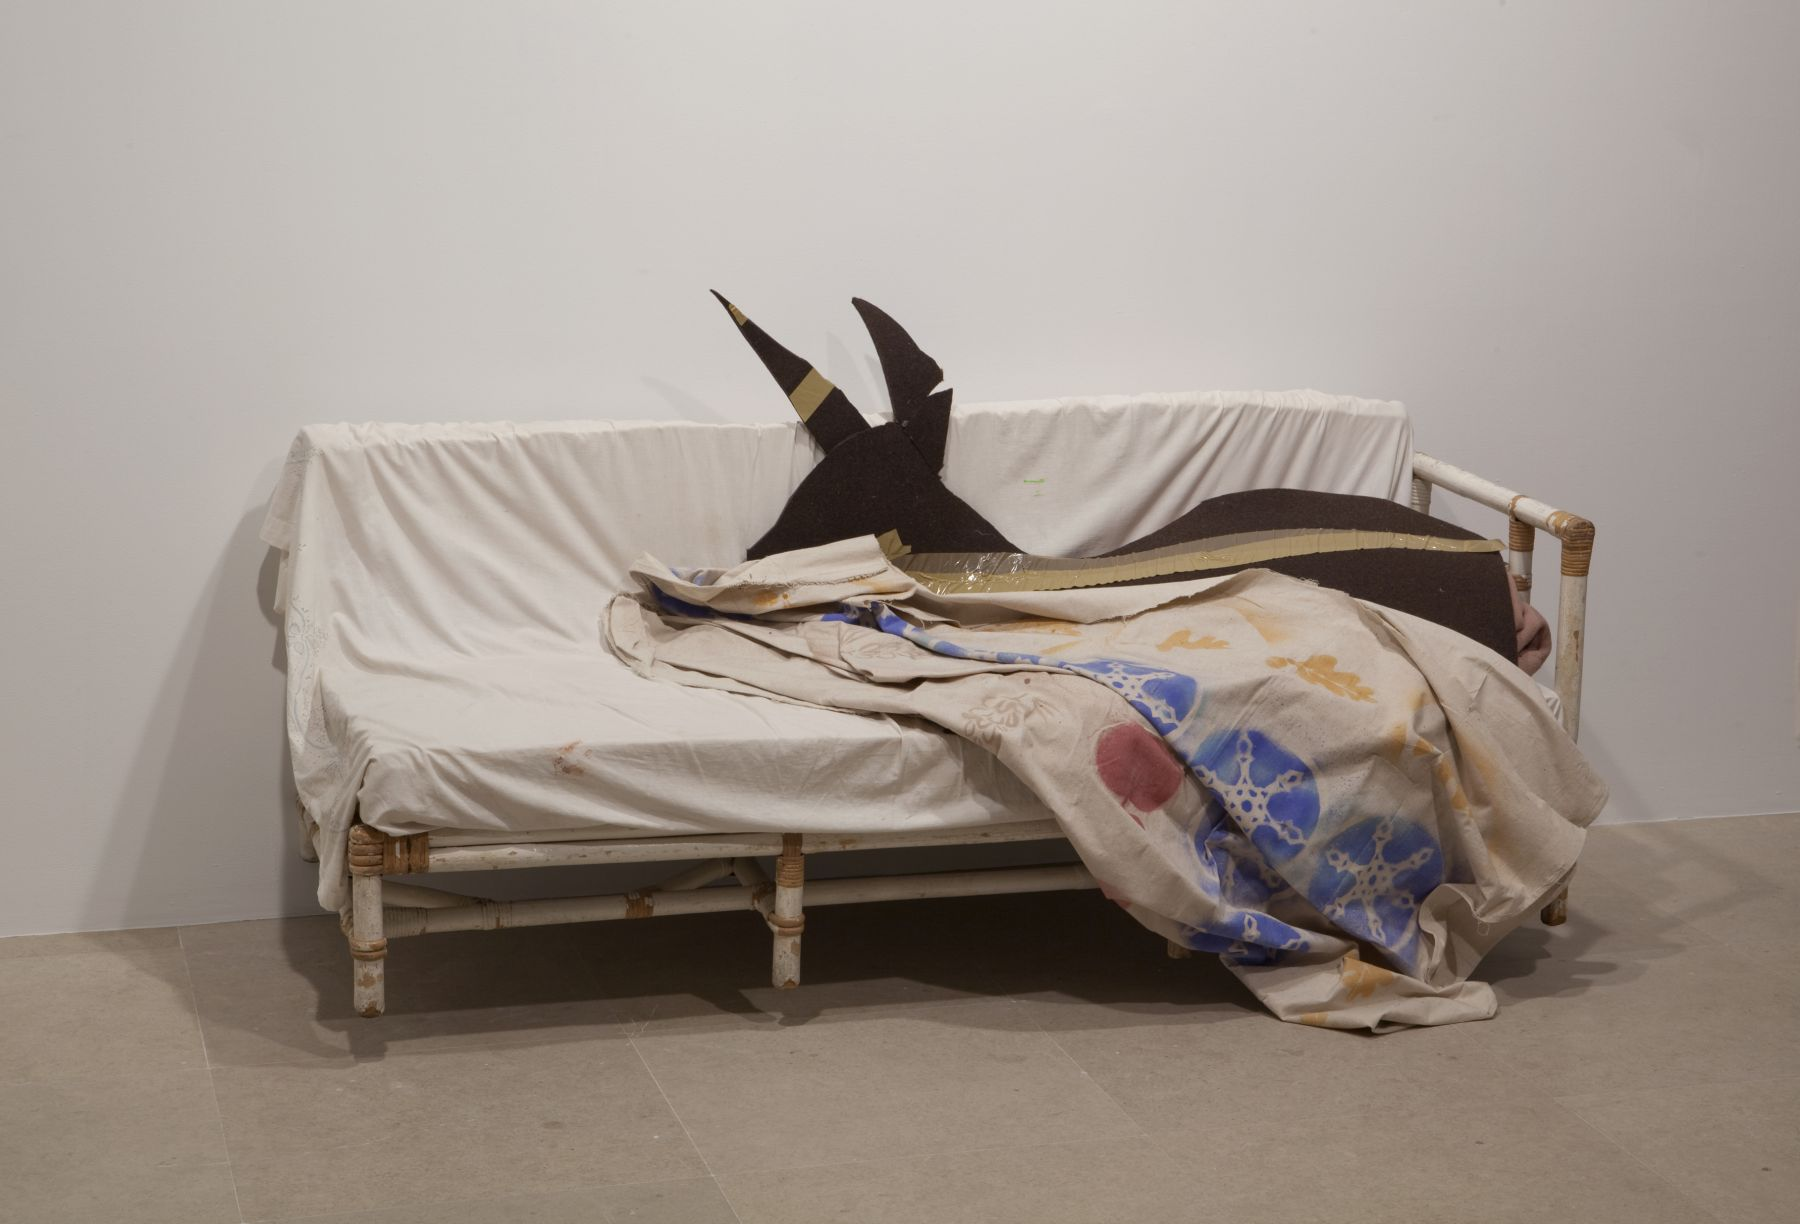 Gedi Sibony (with Diana Lyon), Who Attracts All That is Named, 2010, couch, bed sheet, wool blanket, felt, tape, canvas and spraypaint, dimensions variable